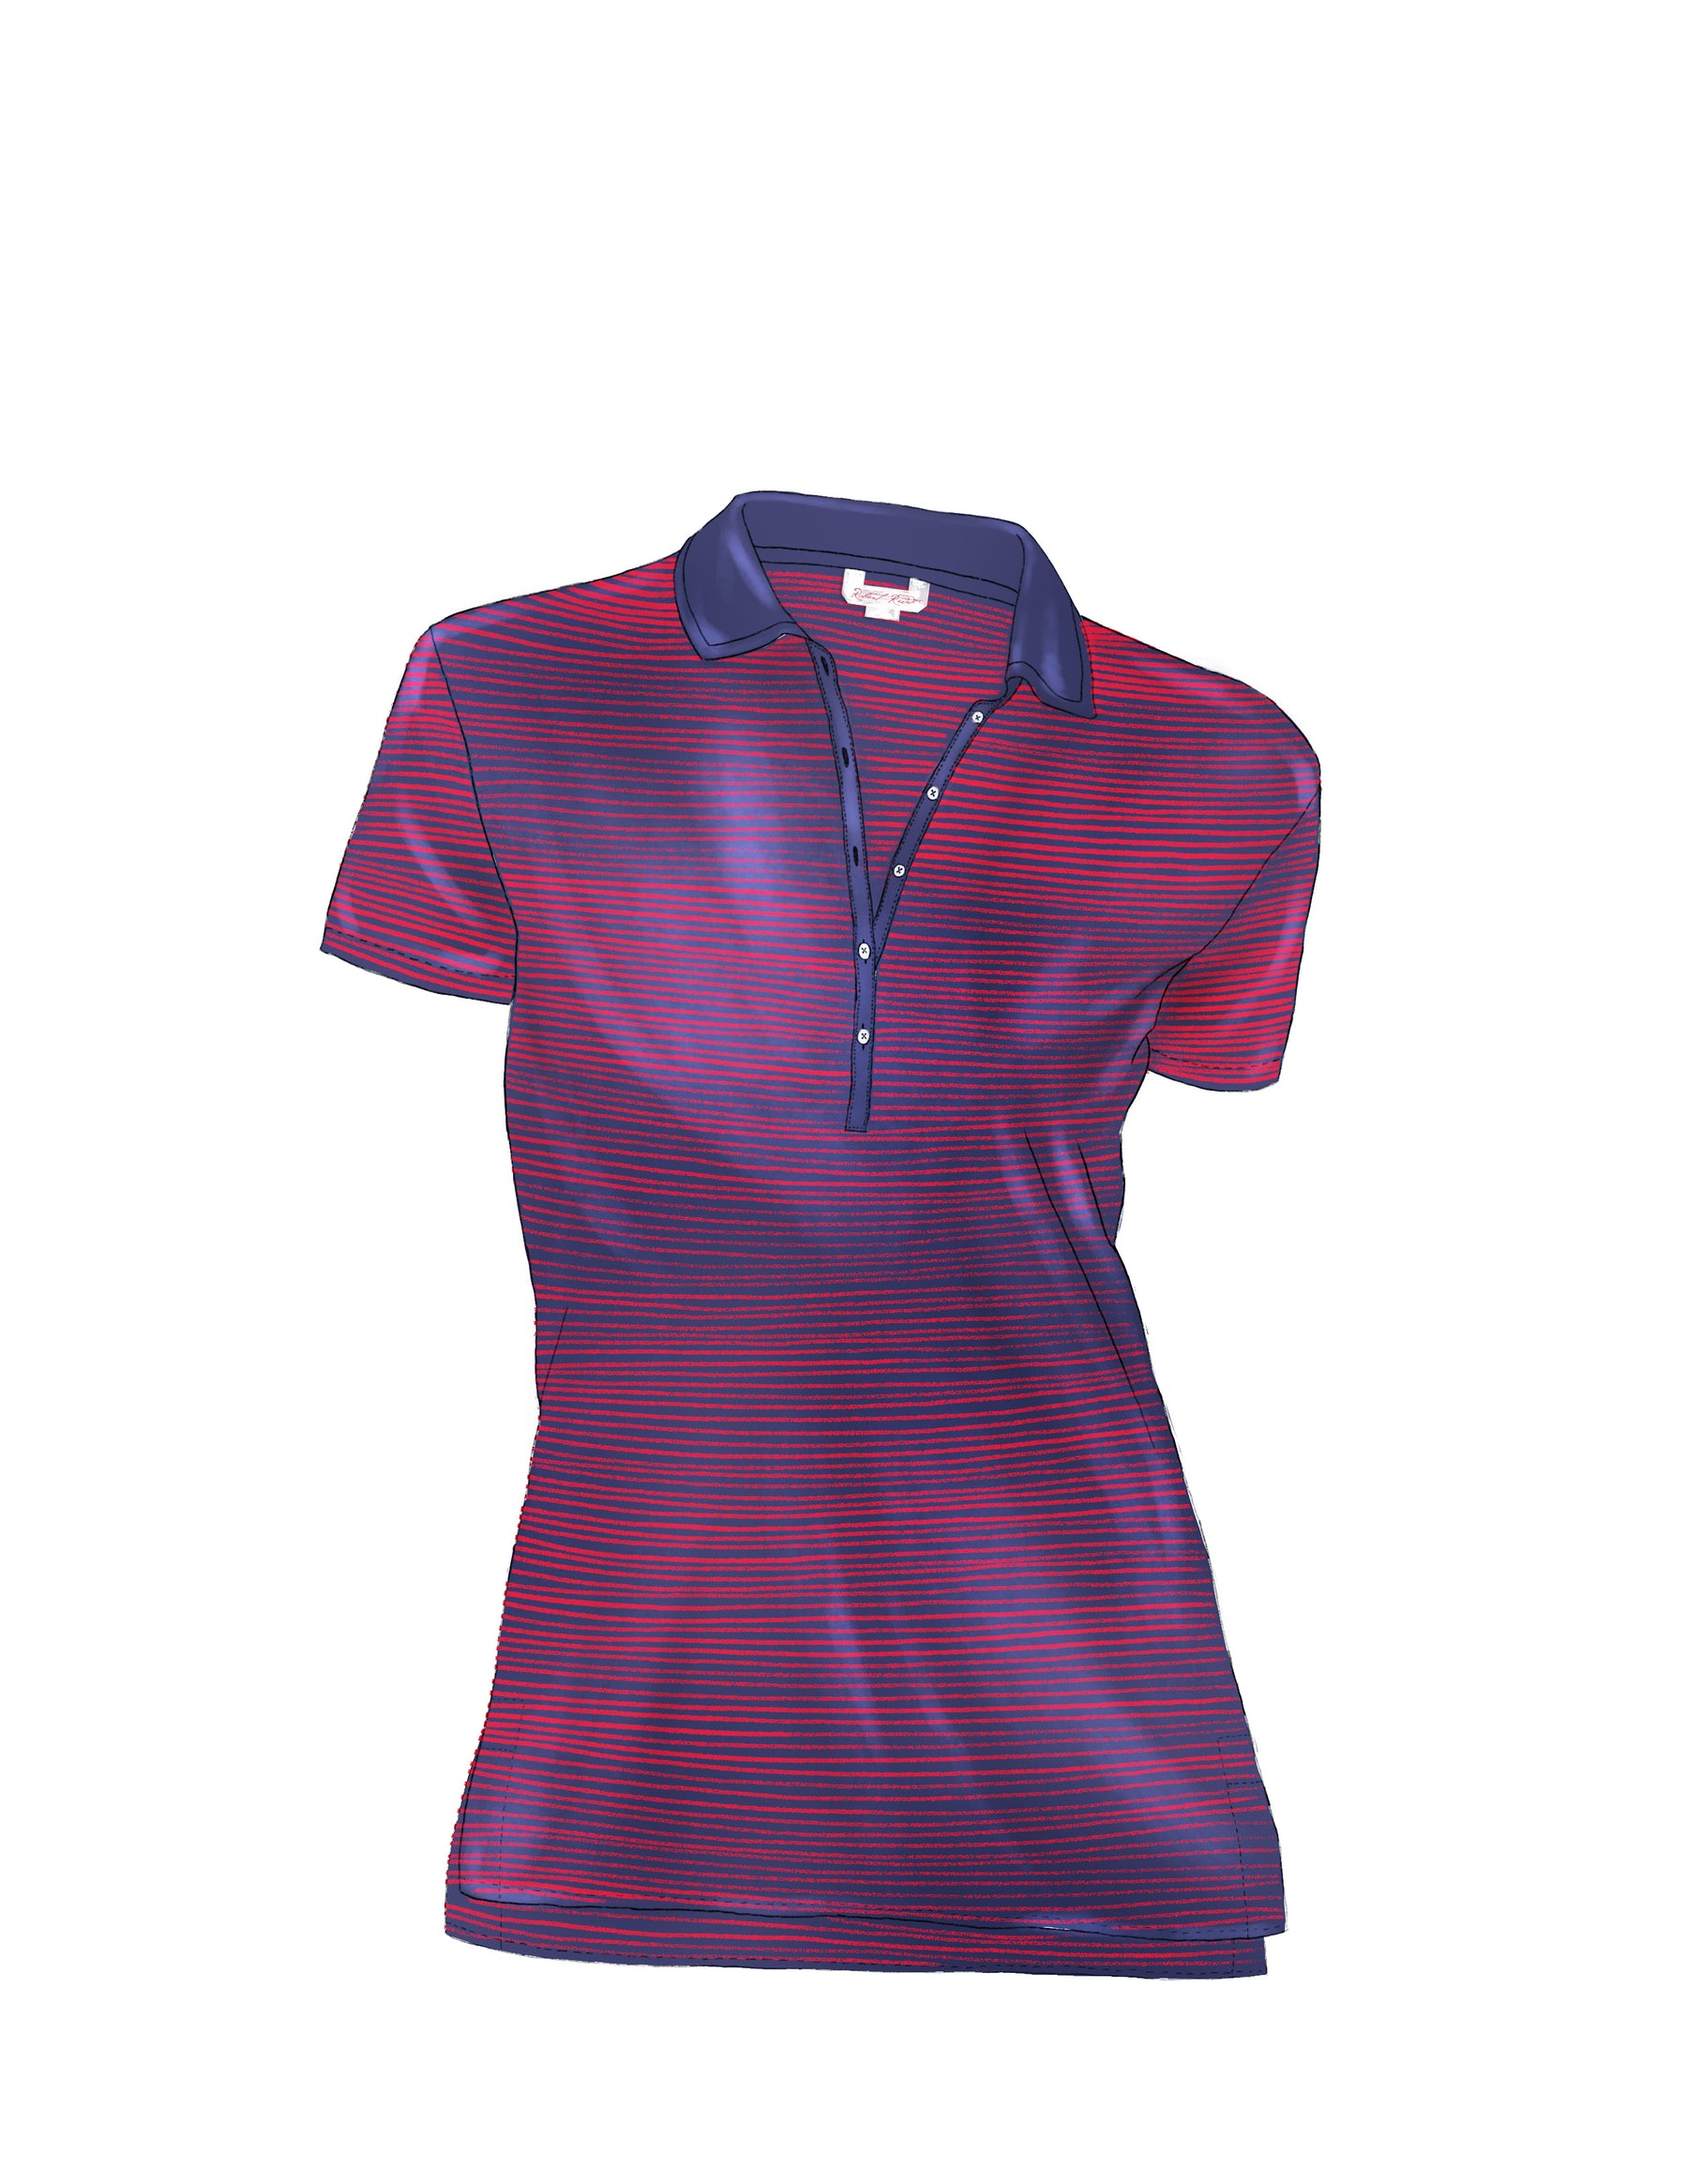 Lady Redd short sleeve knit polo shirt with long placket and sexy curves